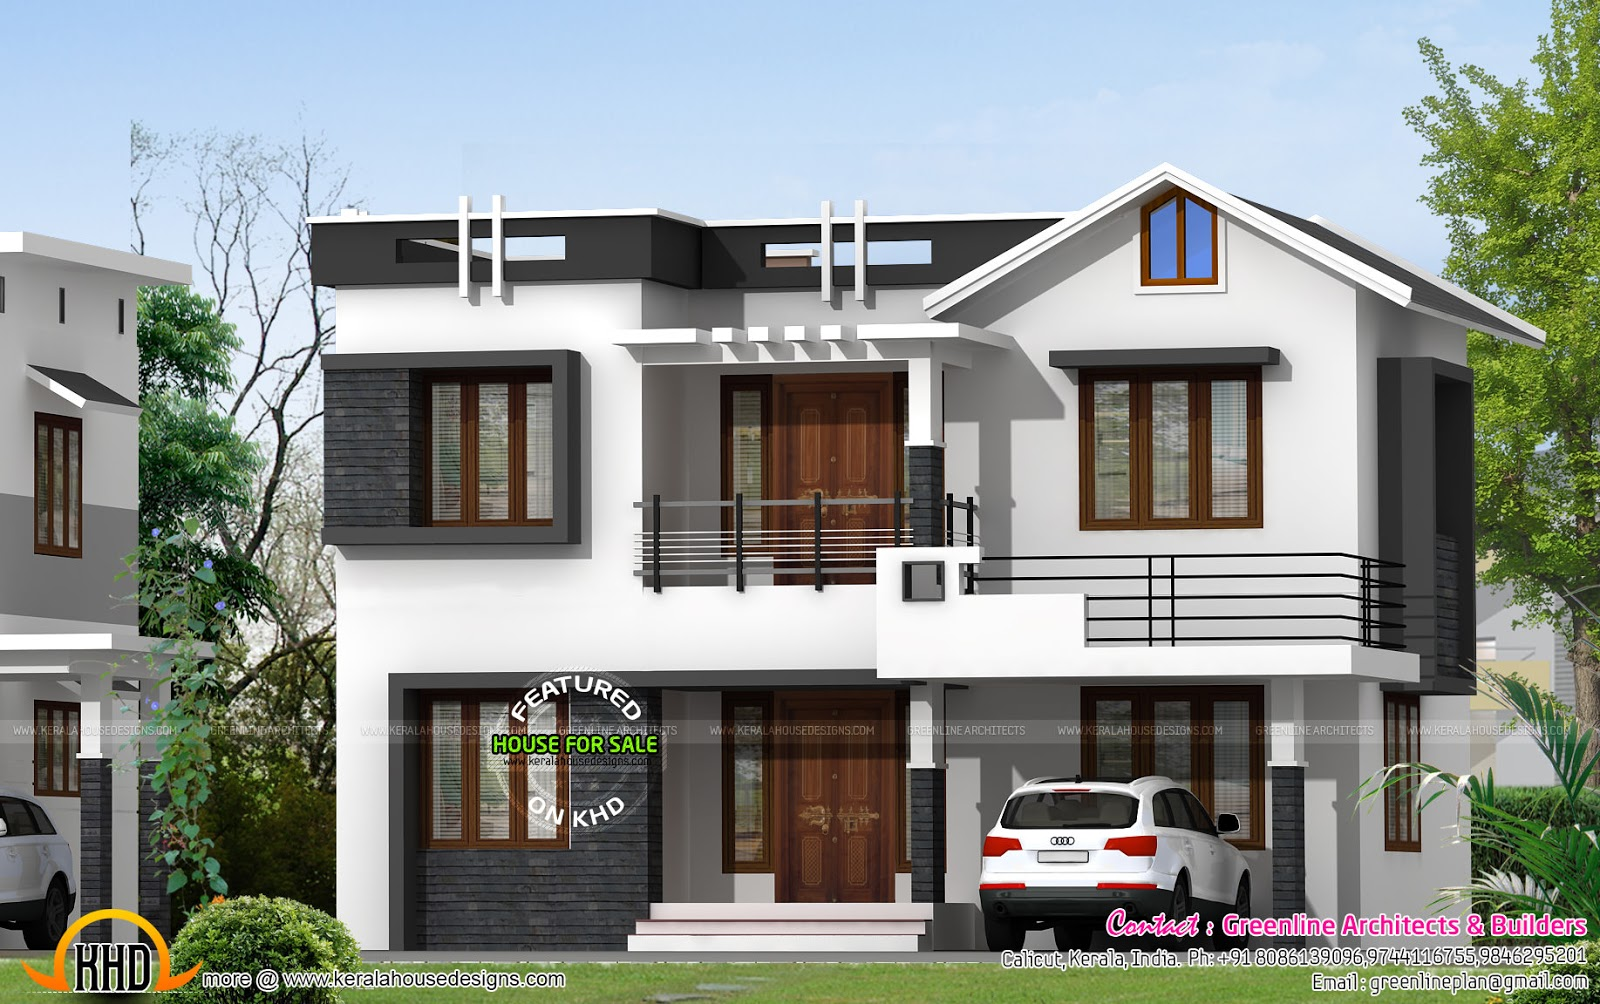 9 Beautiful Kerala Houses By Pentagon Architects – Dibujos Para Colorear